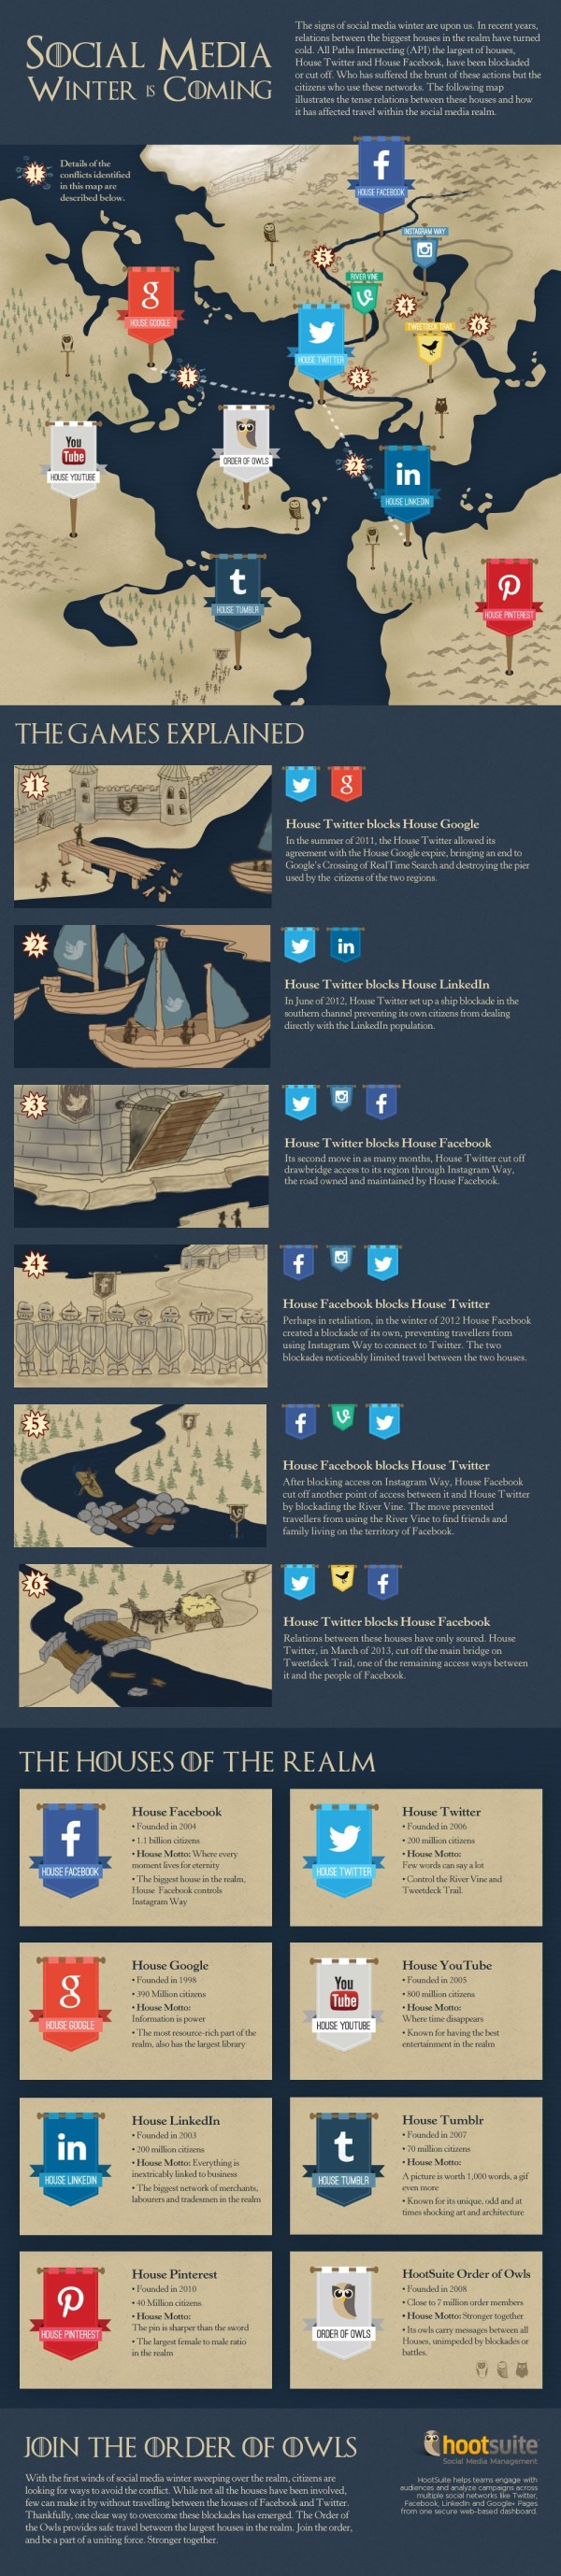 social media wars game of thrones style